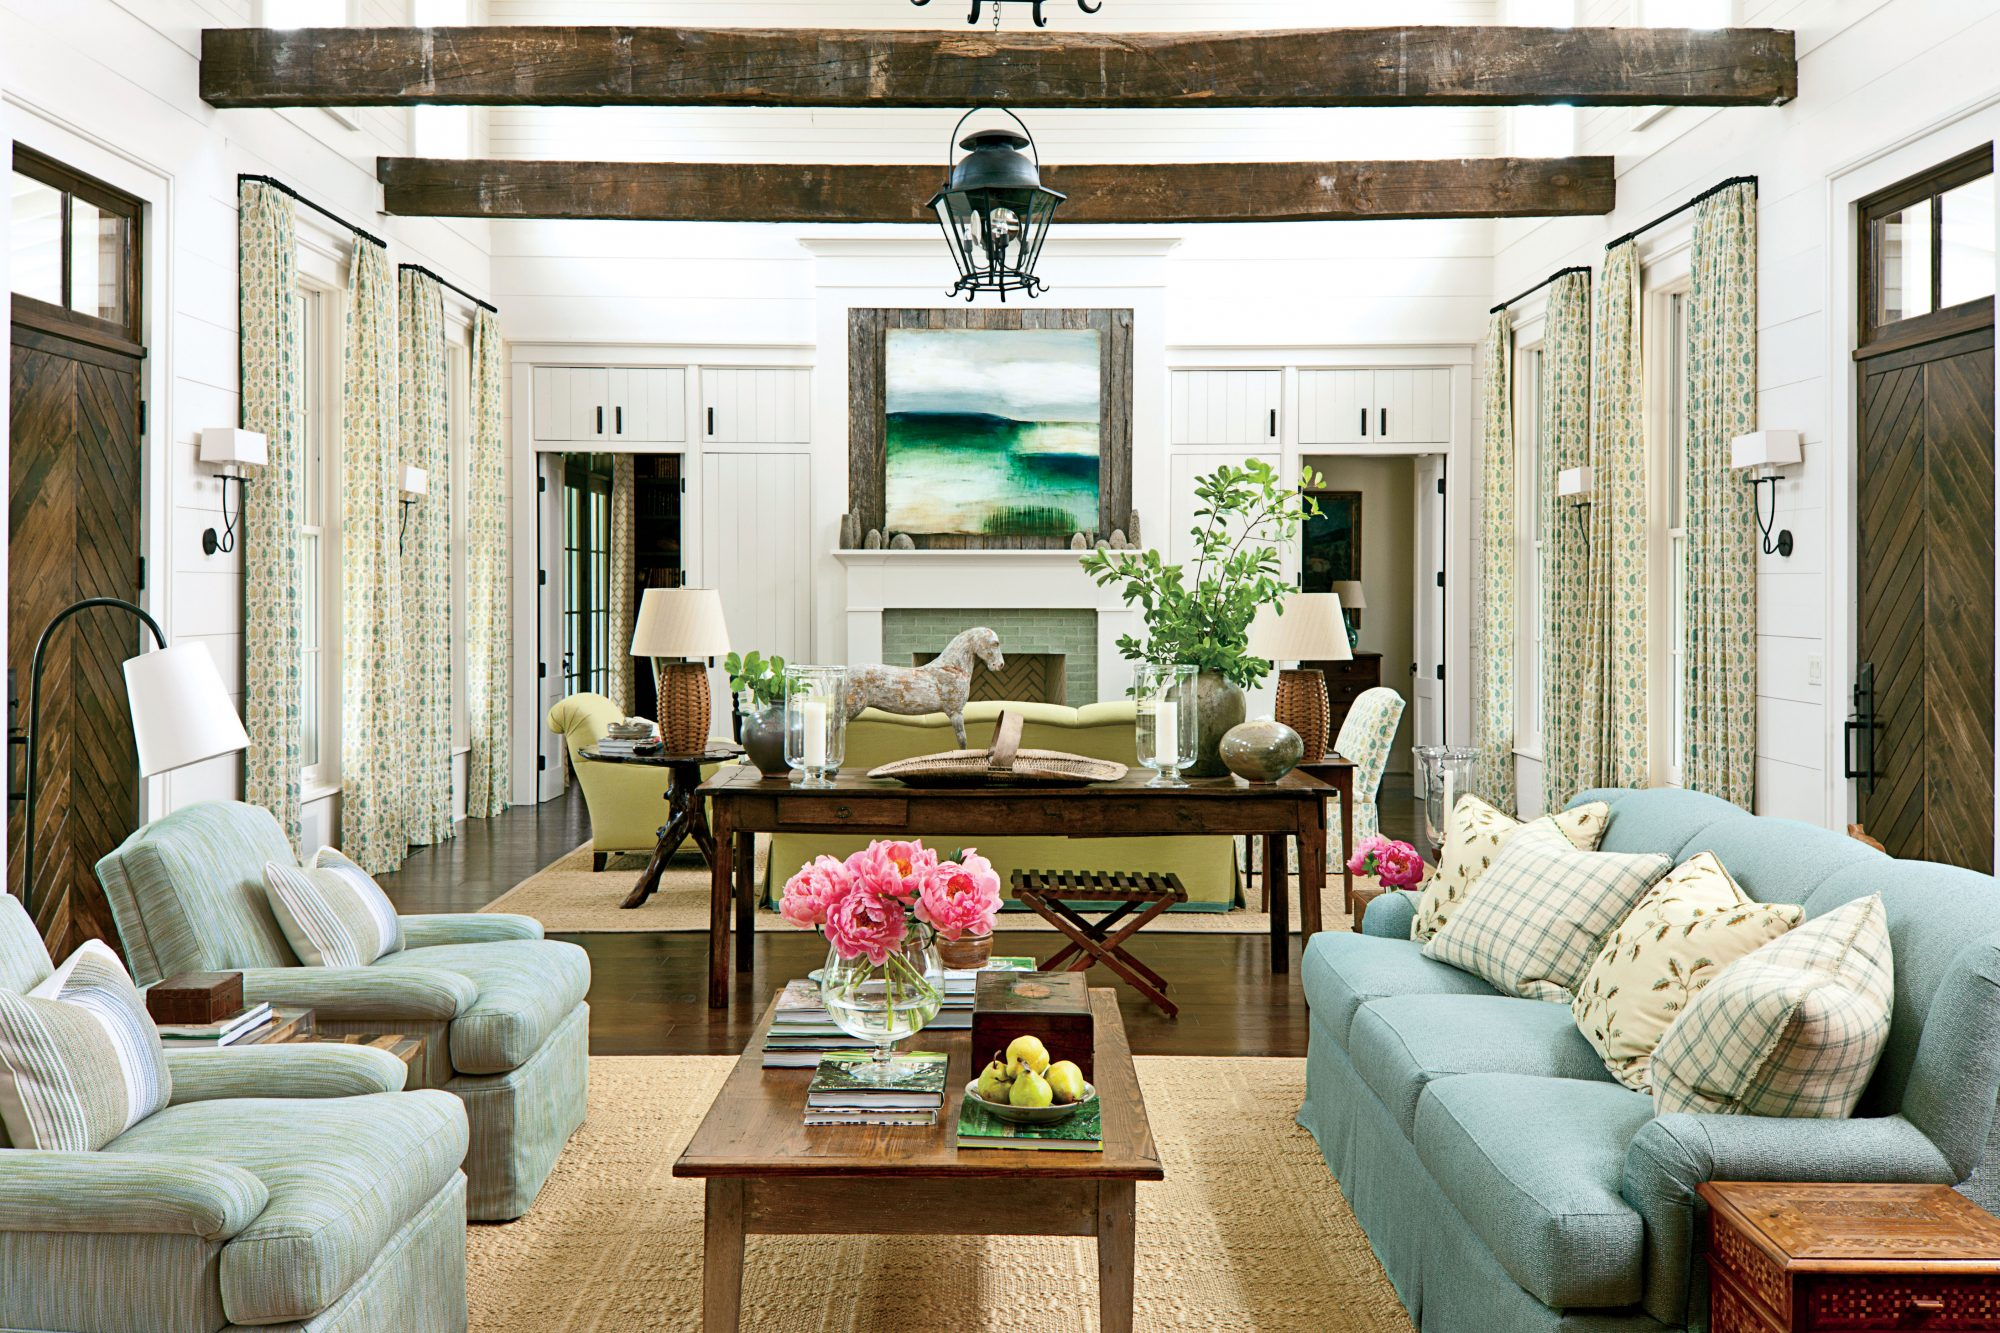 Fontanel Idea House: The Living Room